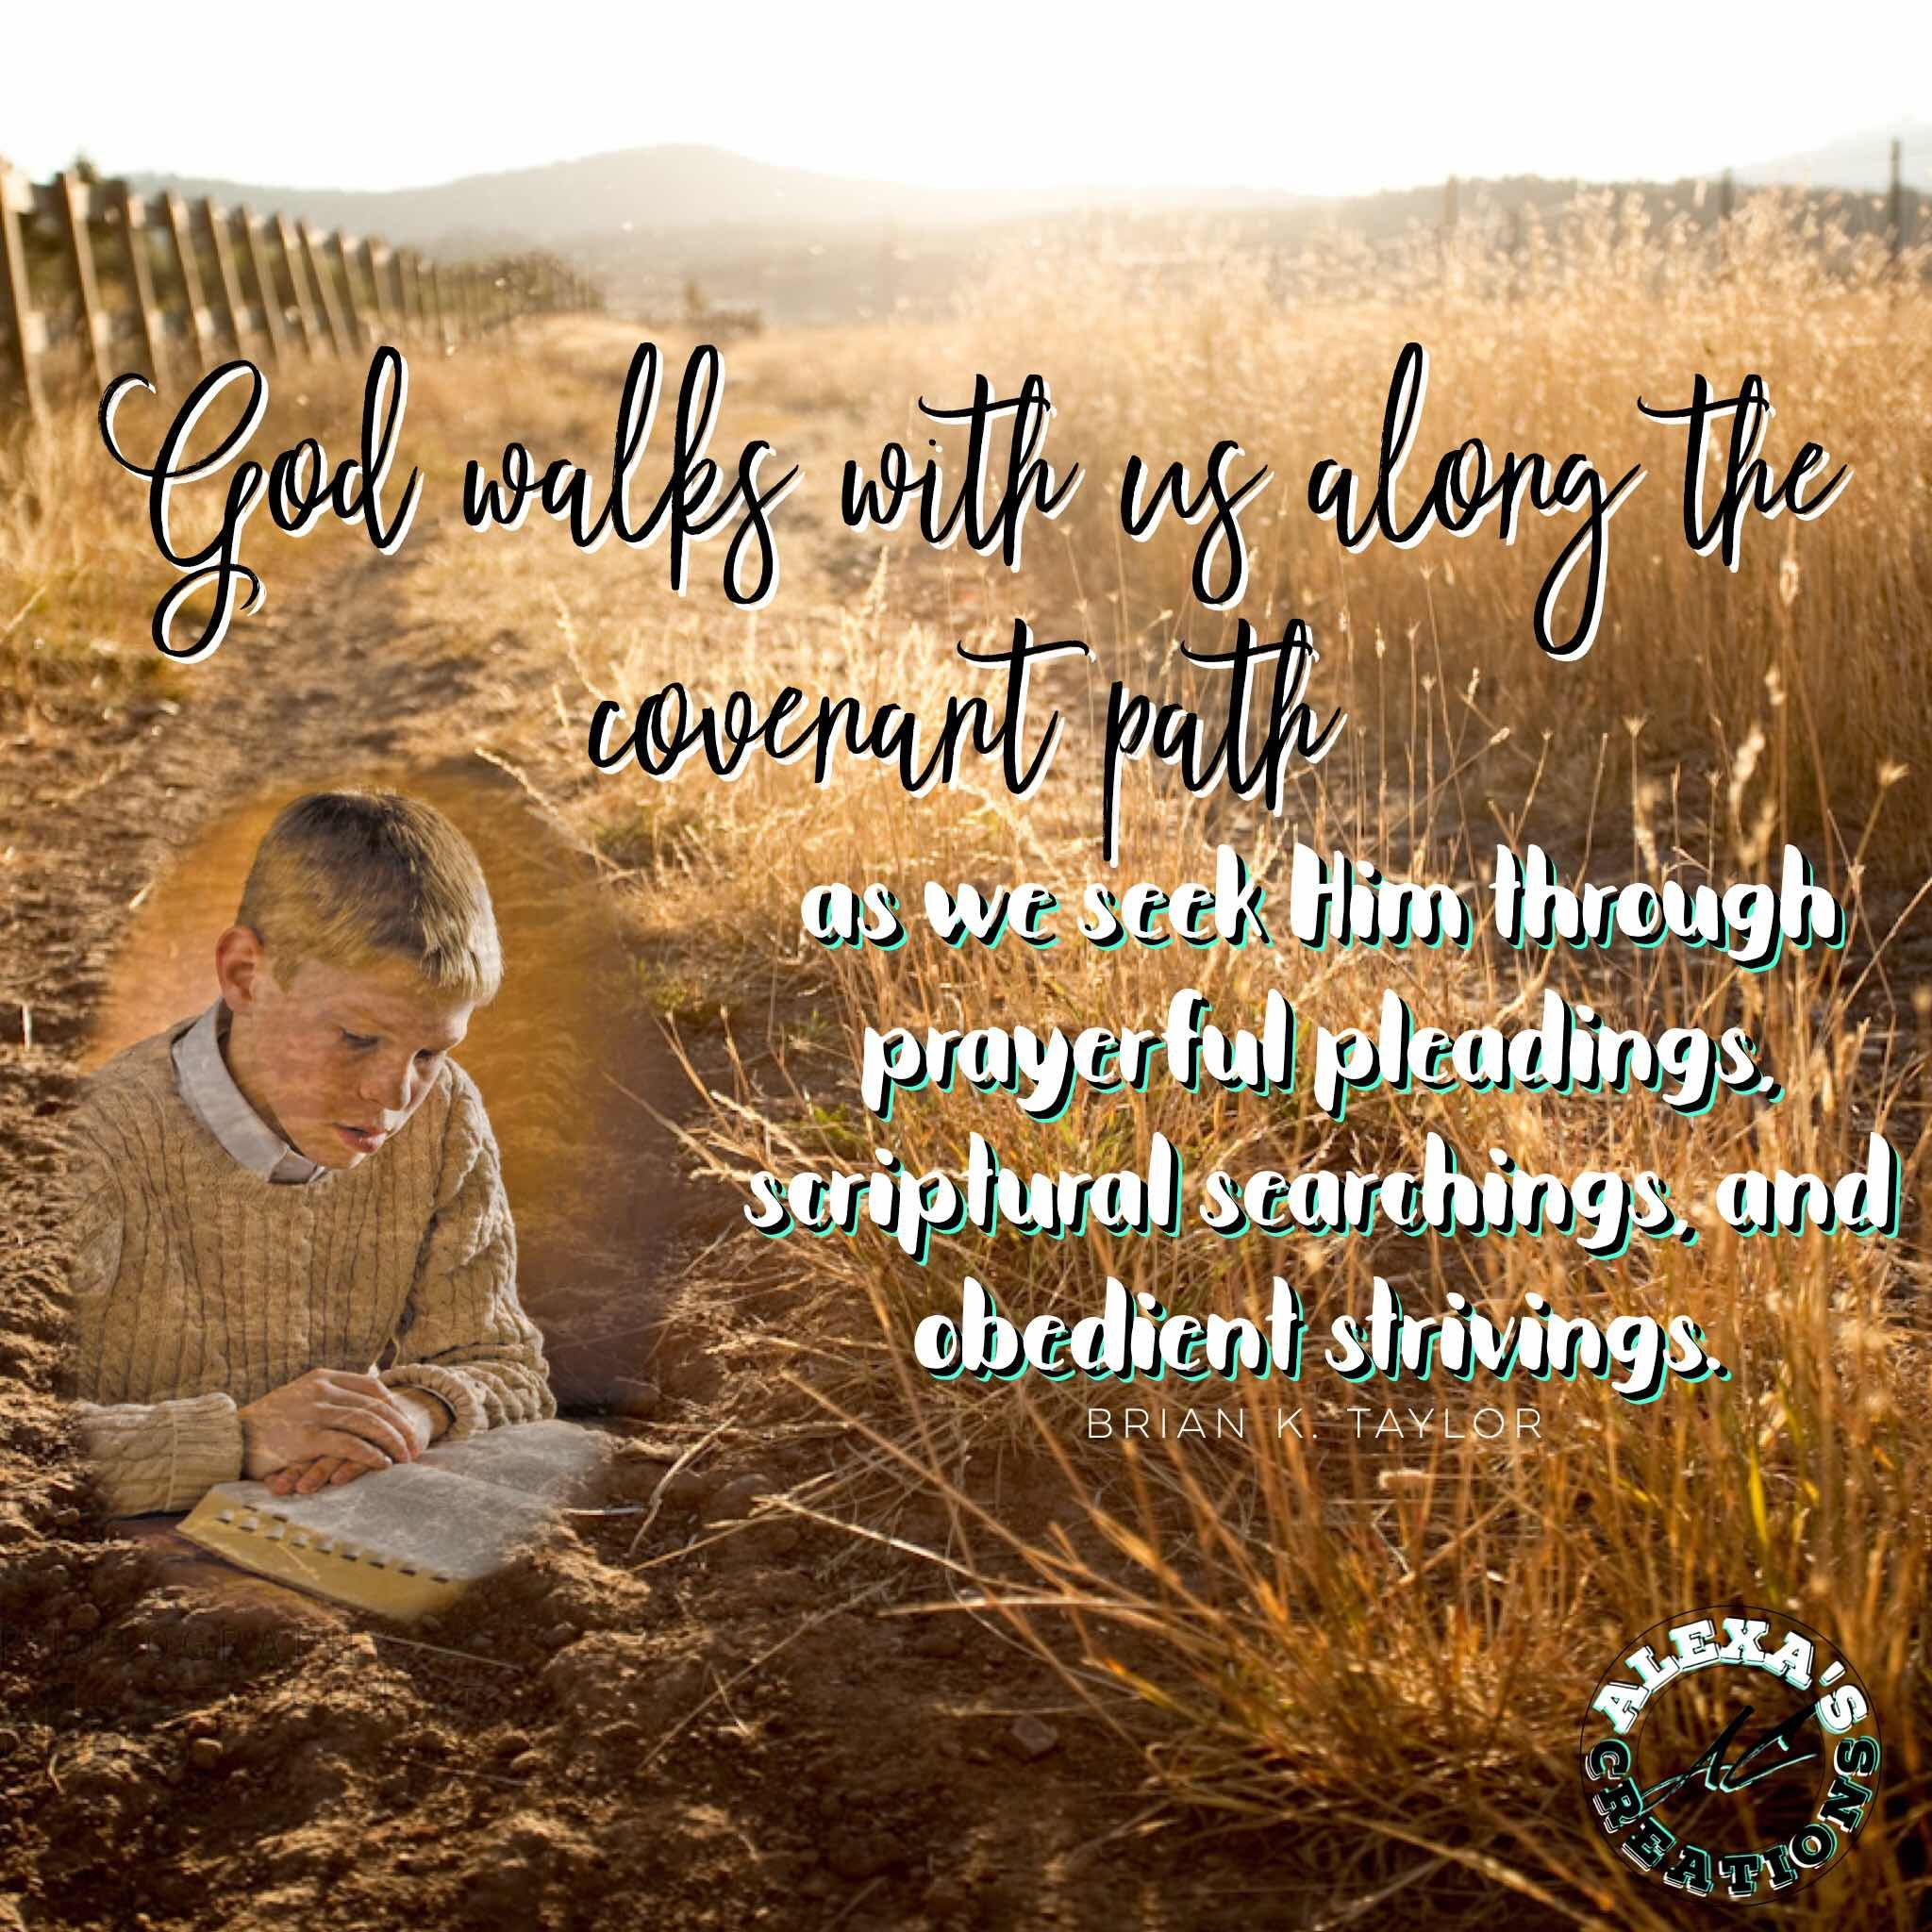 Youth Insights: Alexa: God walks with us along the covenant